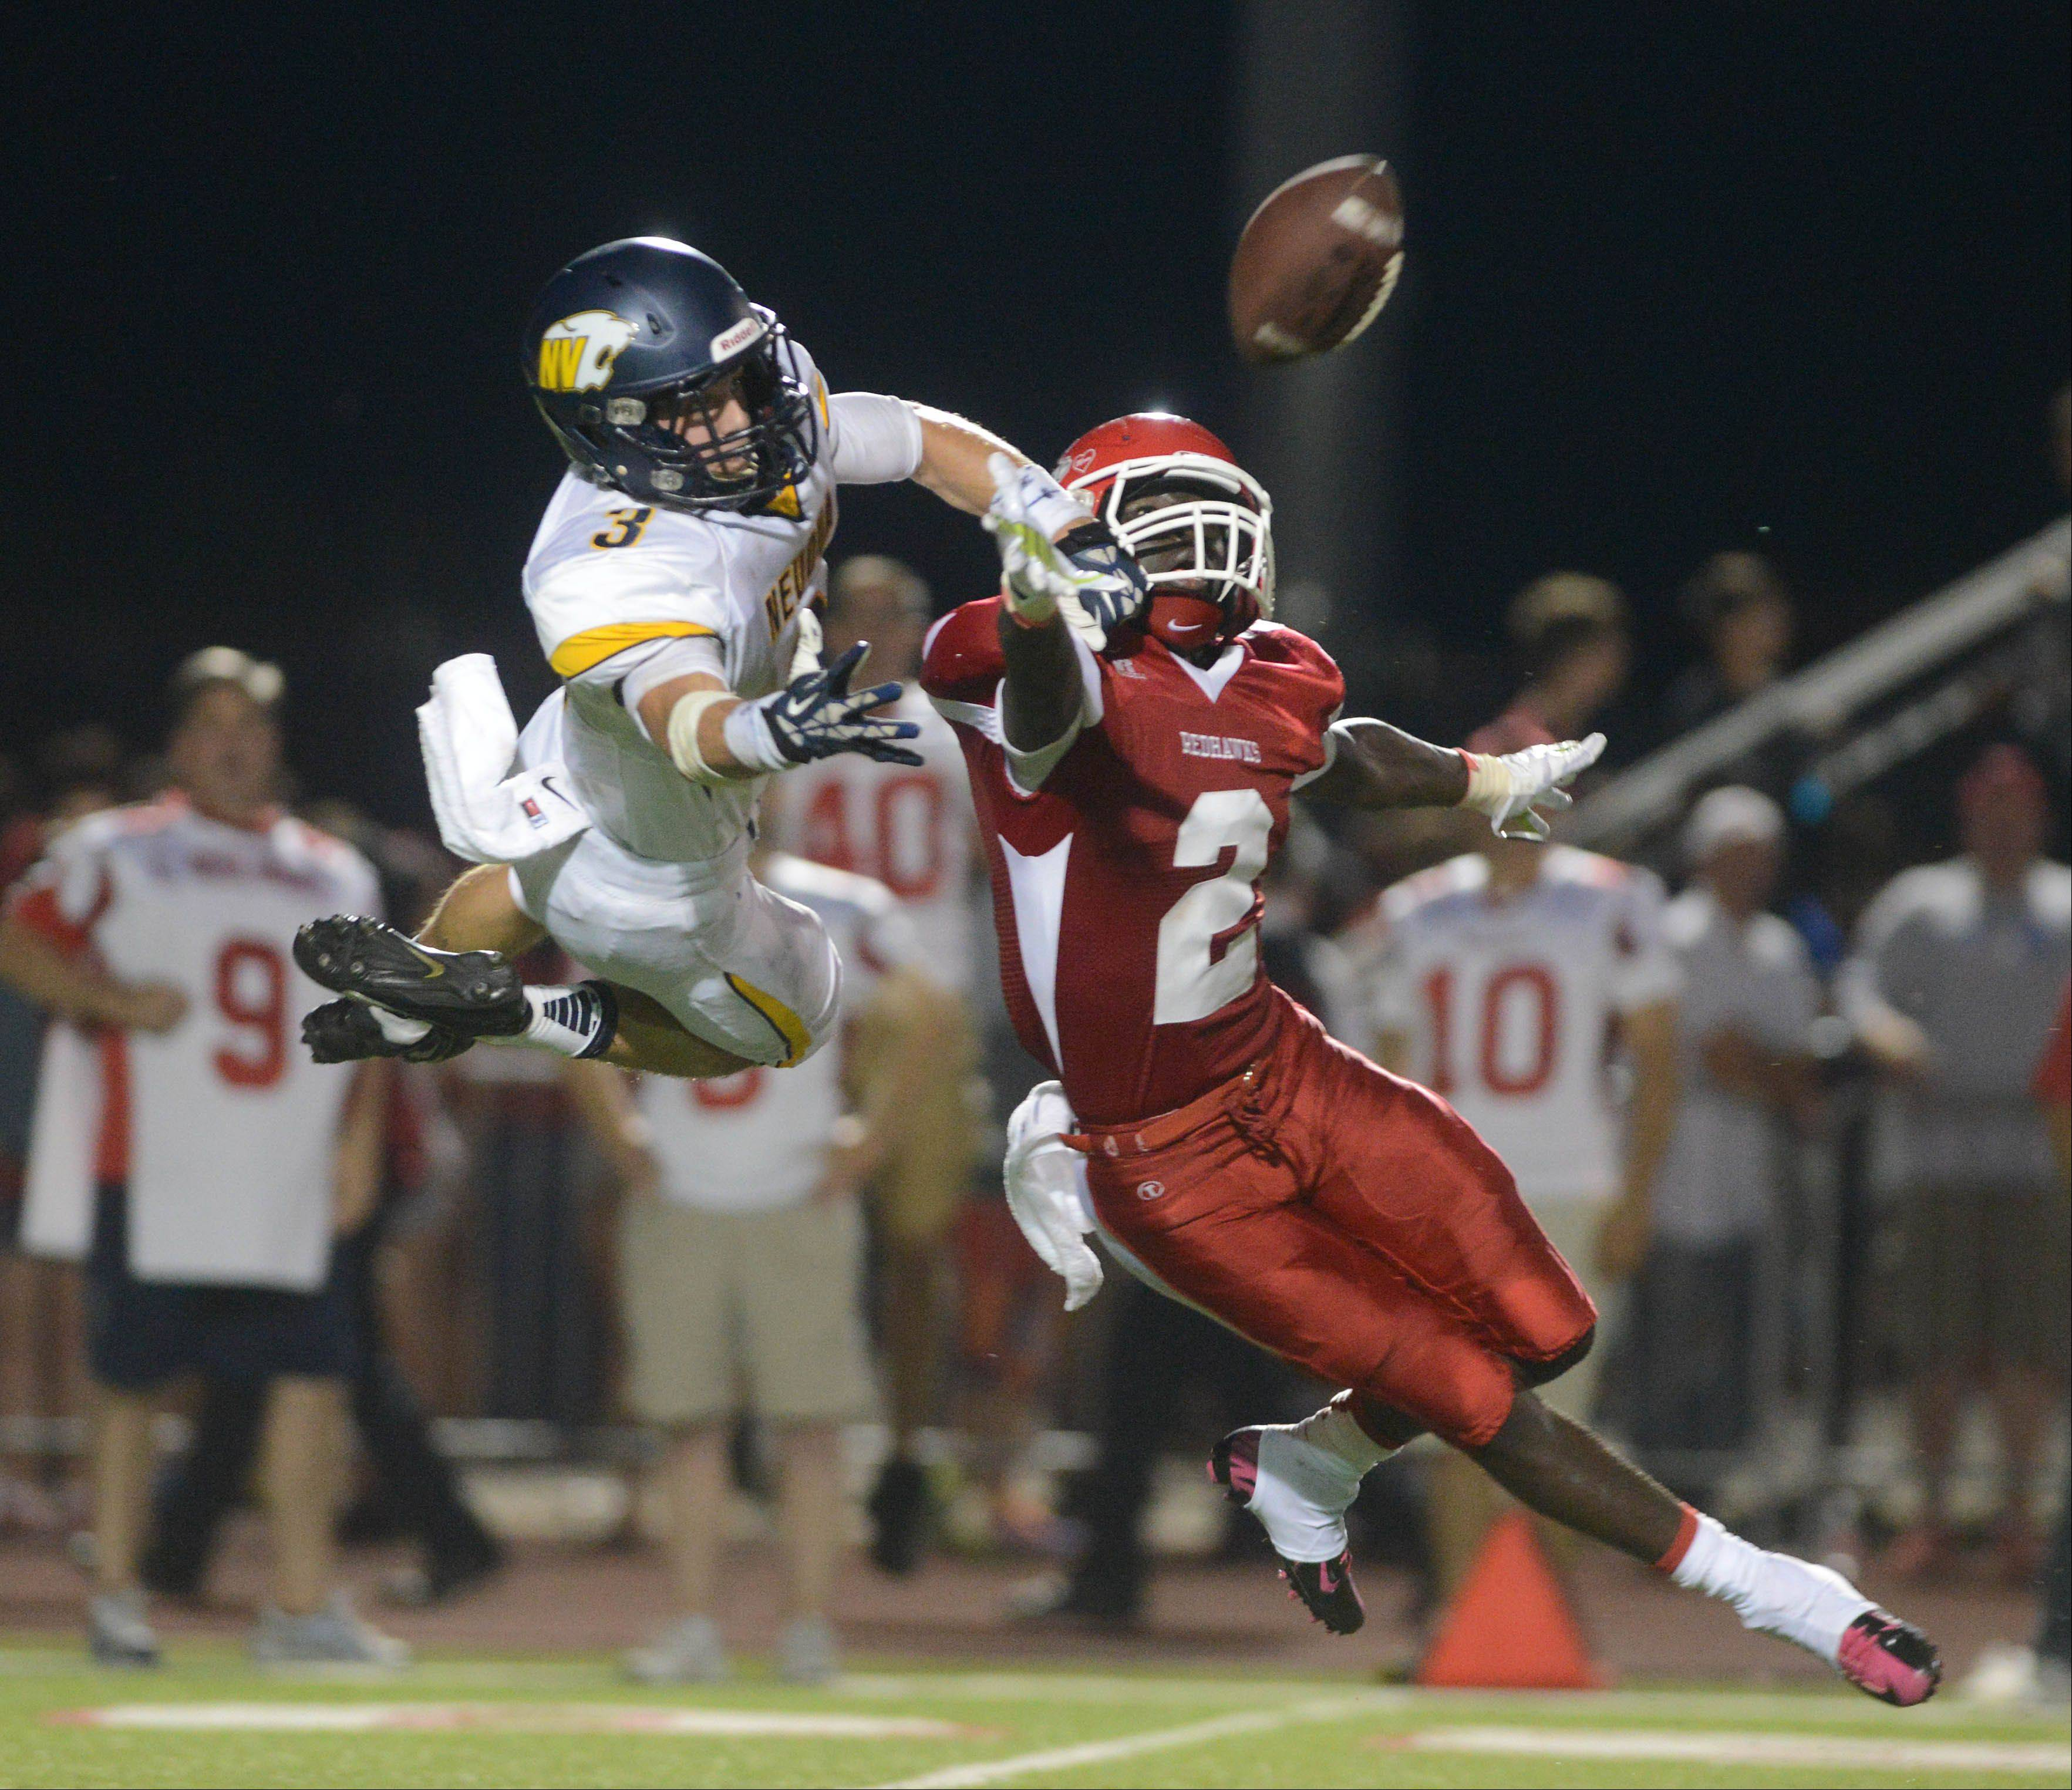 Mikey Dudek of Neuqua Valley,left, and Jon Lubanza of Naperville Central go up for pass.